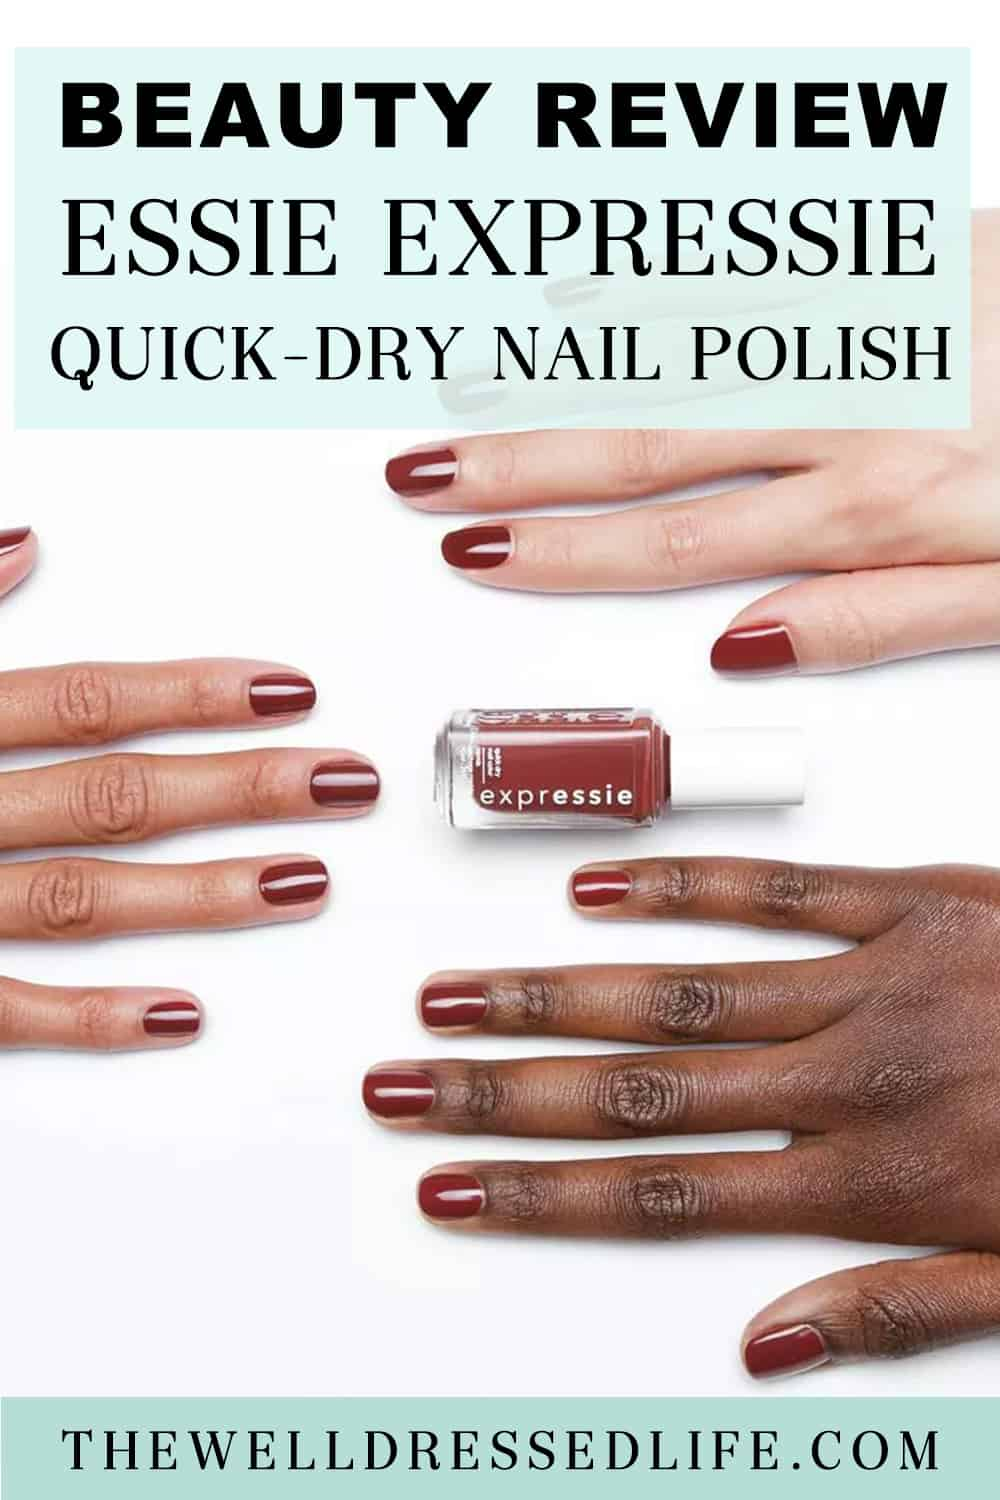 Beauty Review: Essie Expressie Quick Dry Nail Polish